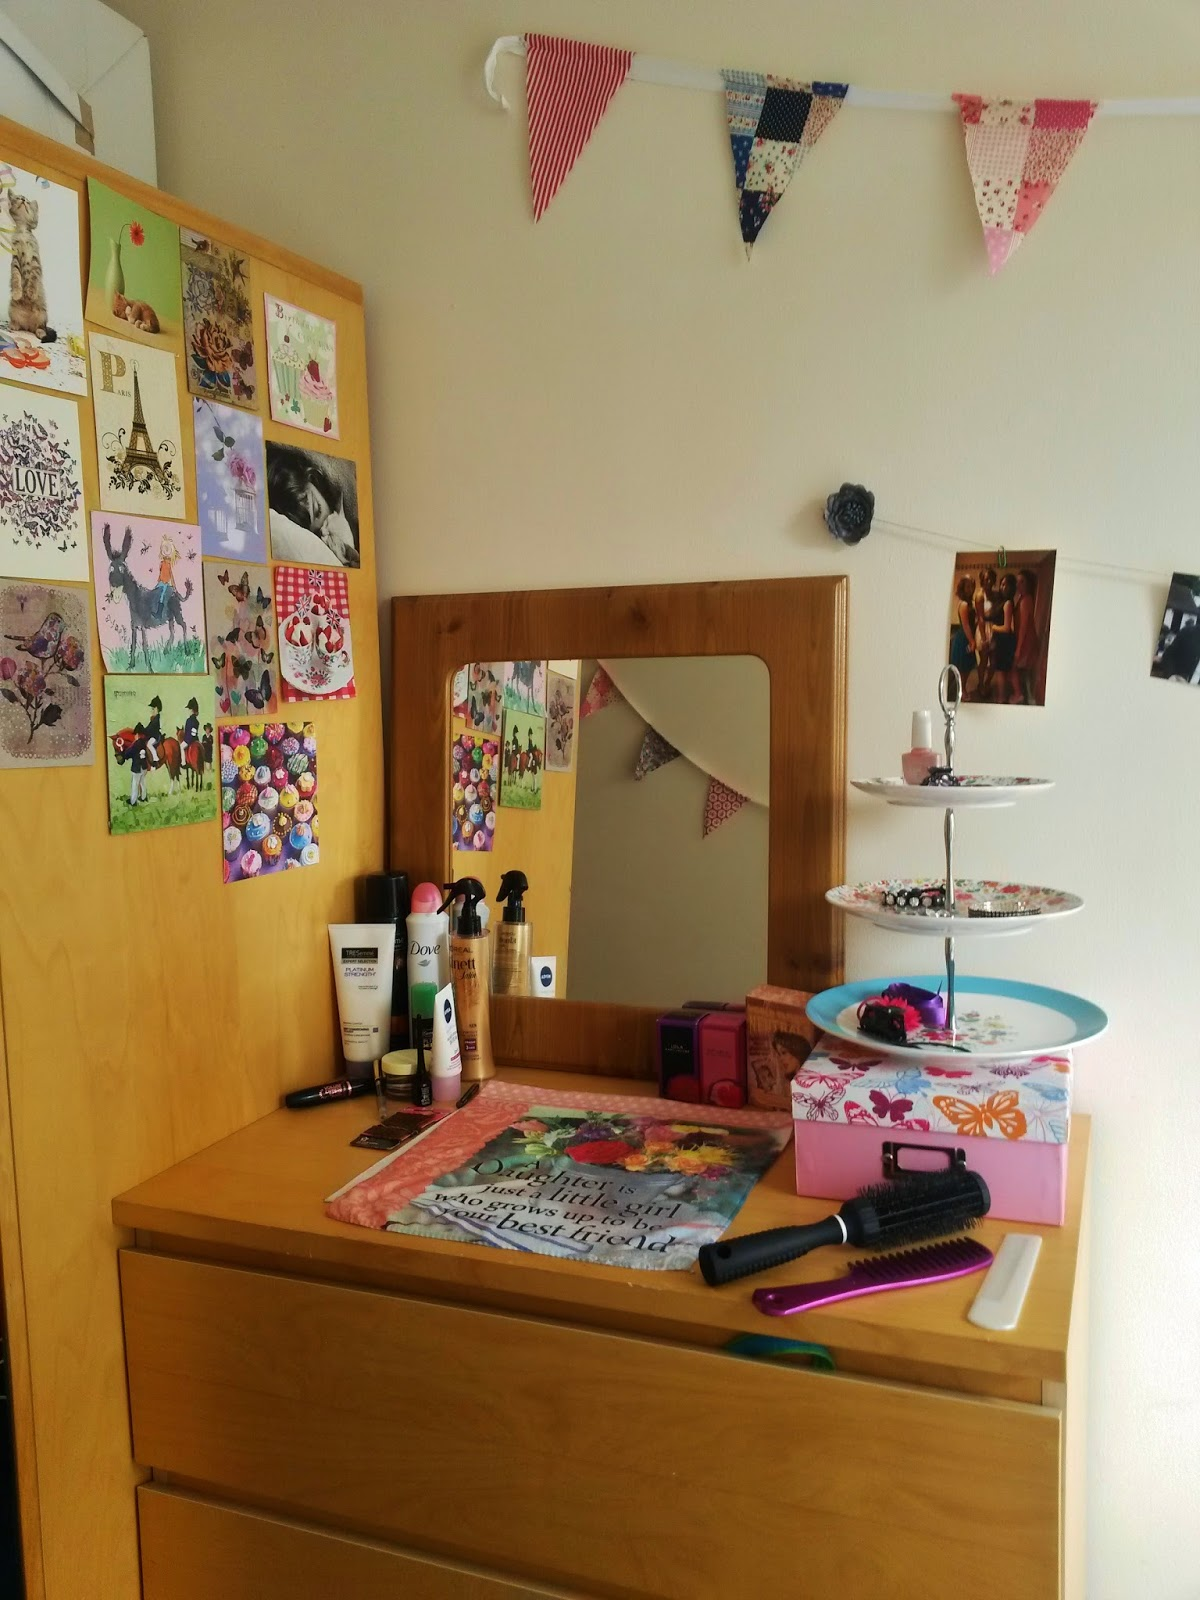 Dressing table and postcards, university bedroom